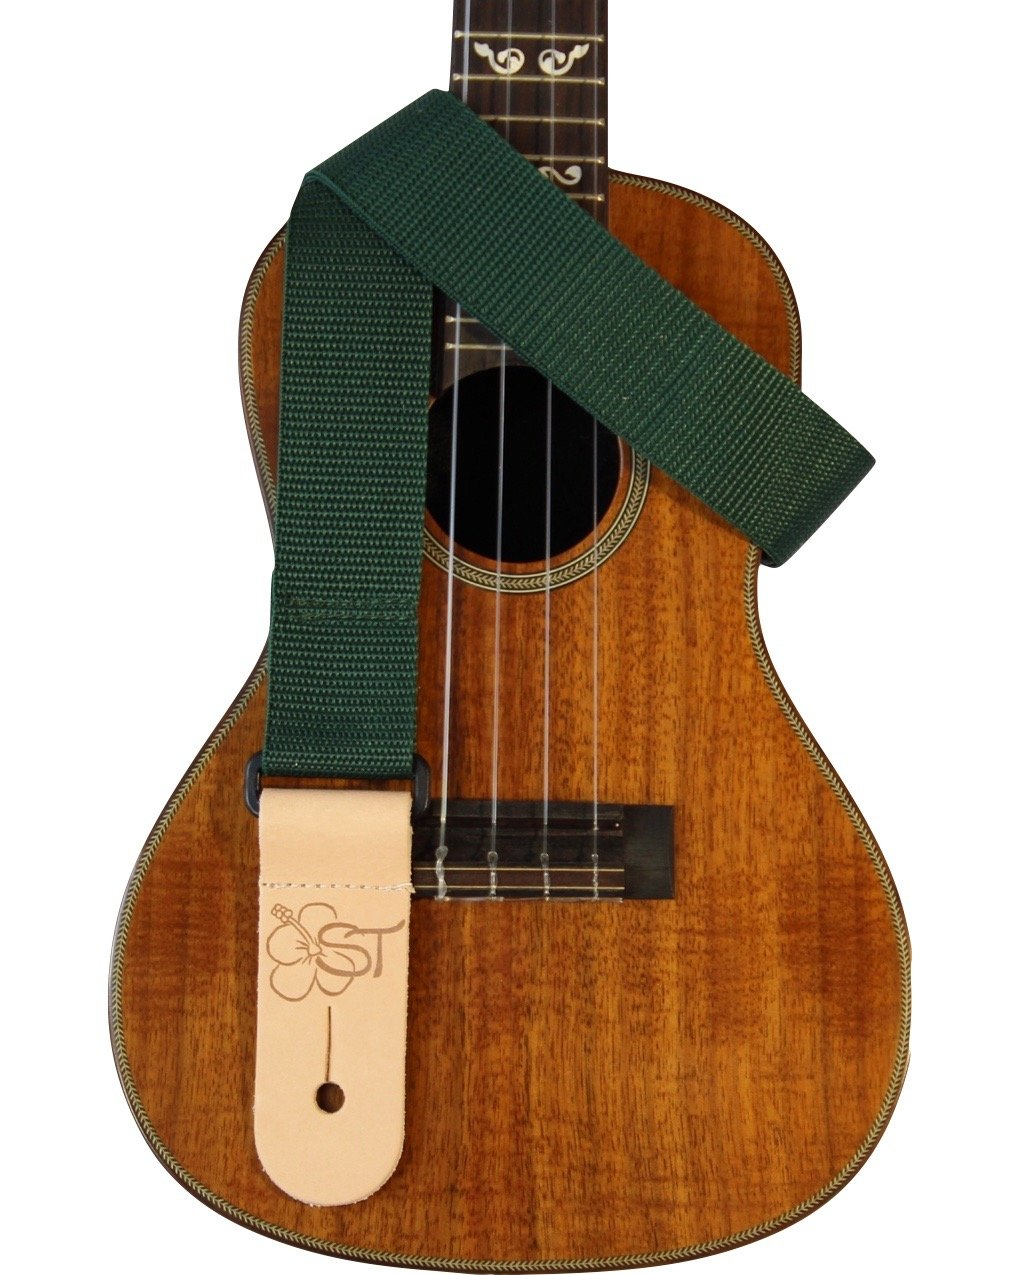 Sherrin's Threads 1.5 Green Ukulele Strap